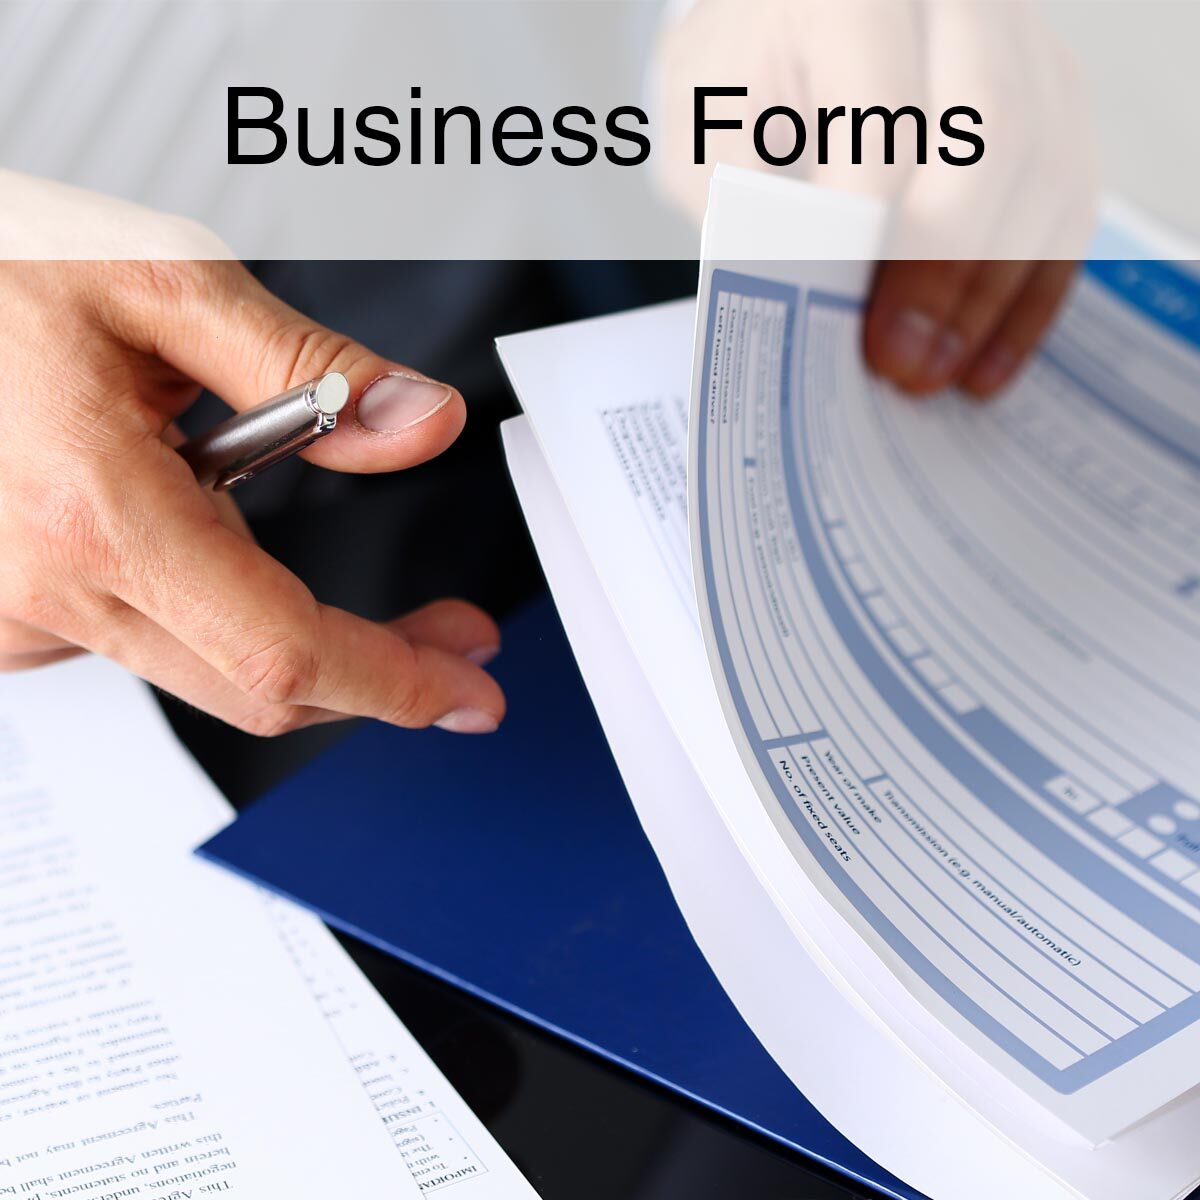 web_printed_materials_Business_Forms